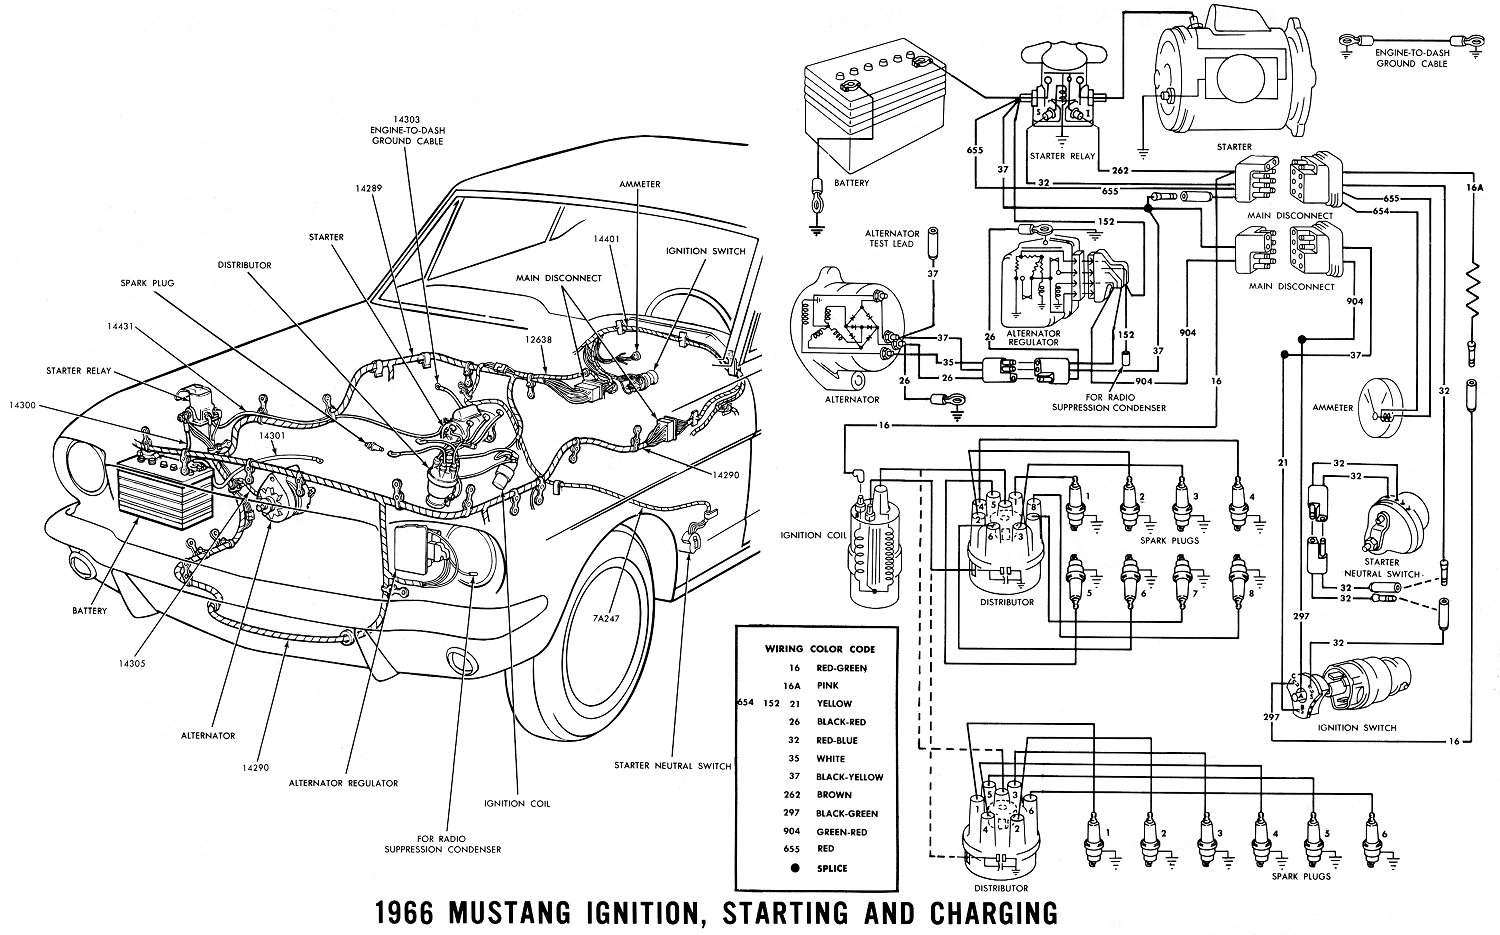 66ignit 1966 mustang wiring diagrams average joe restoration ford 390 engine wiring diagram at eliteediting.co